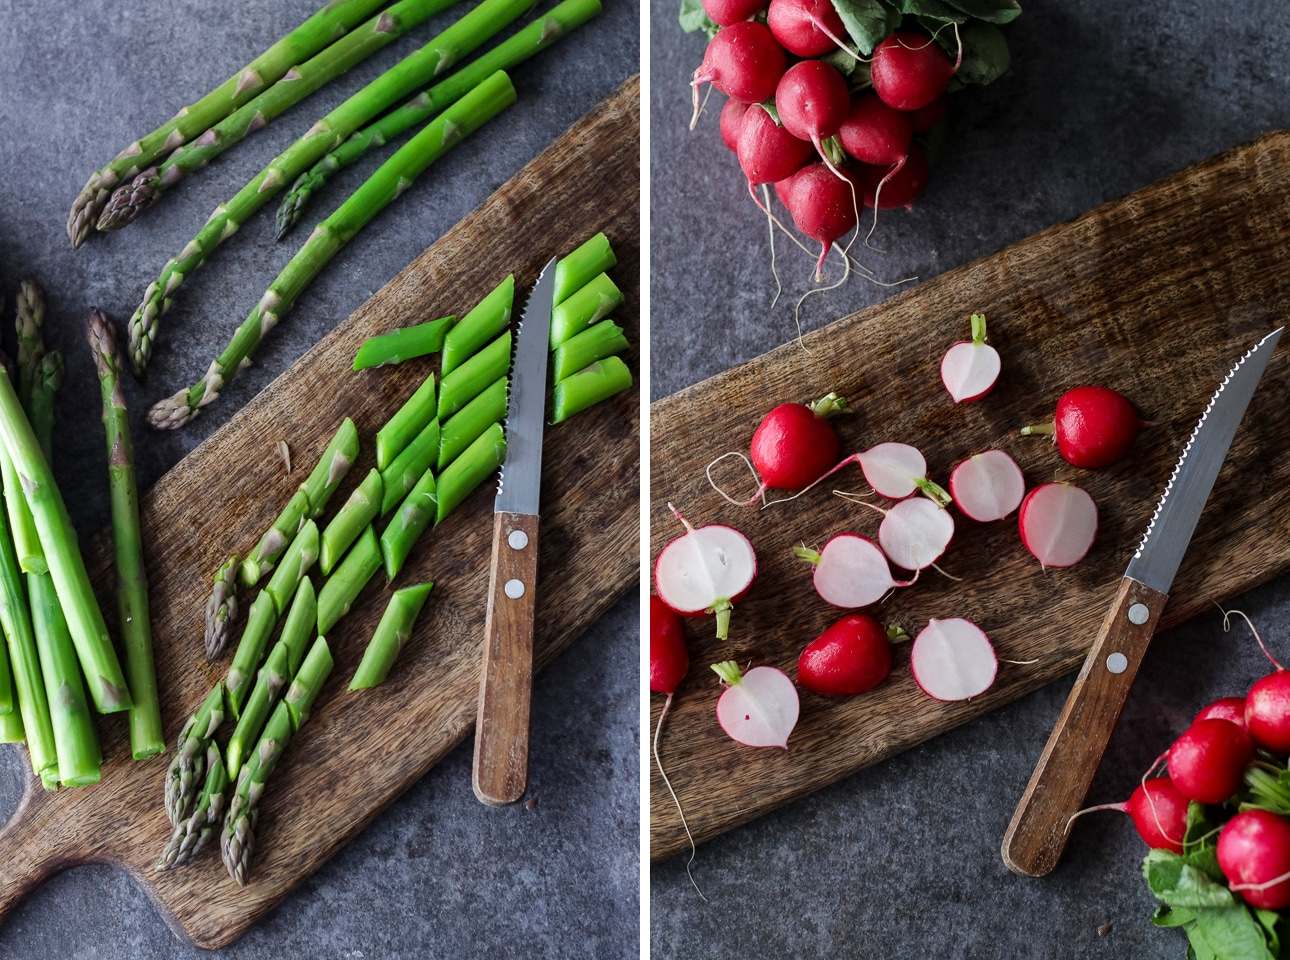 Cutting Asparagus and Radishes on a Wooden Board